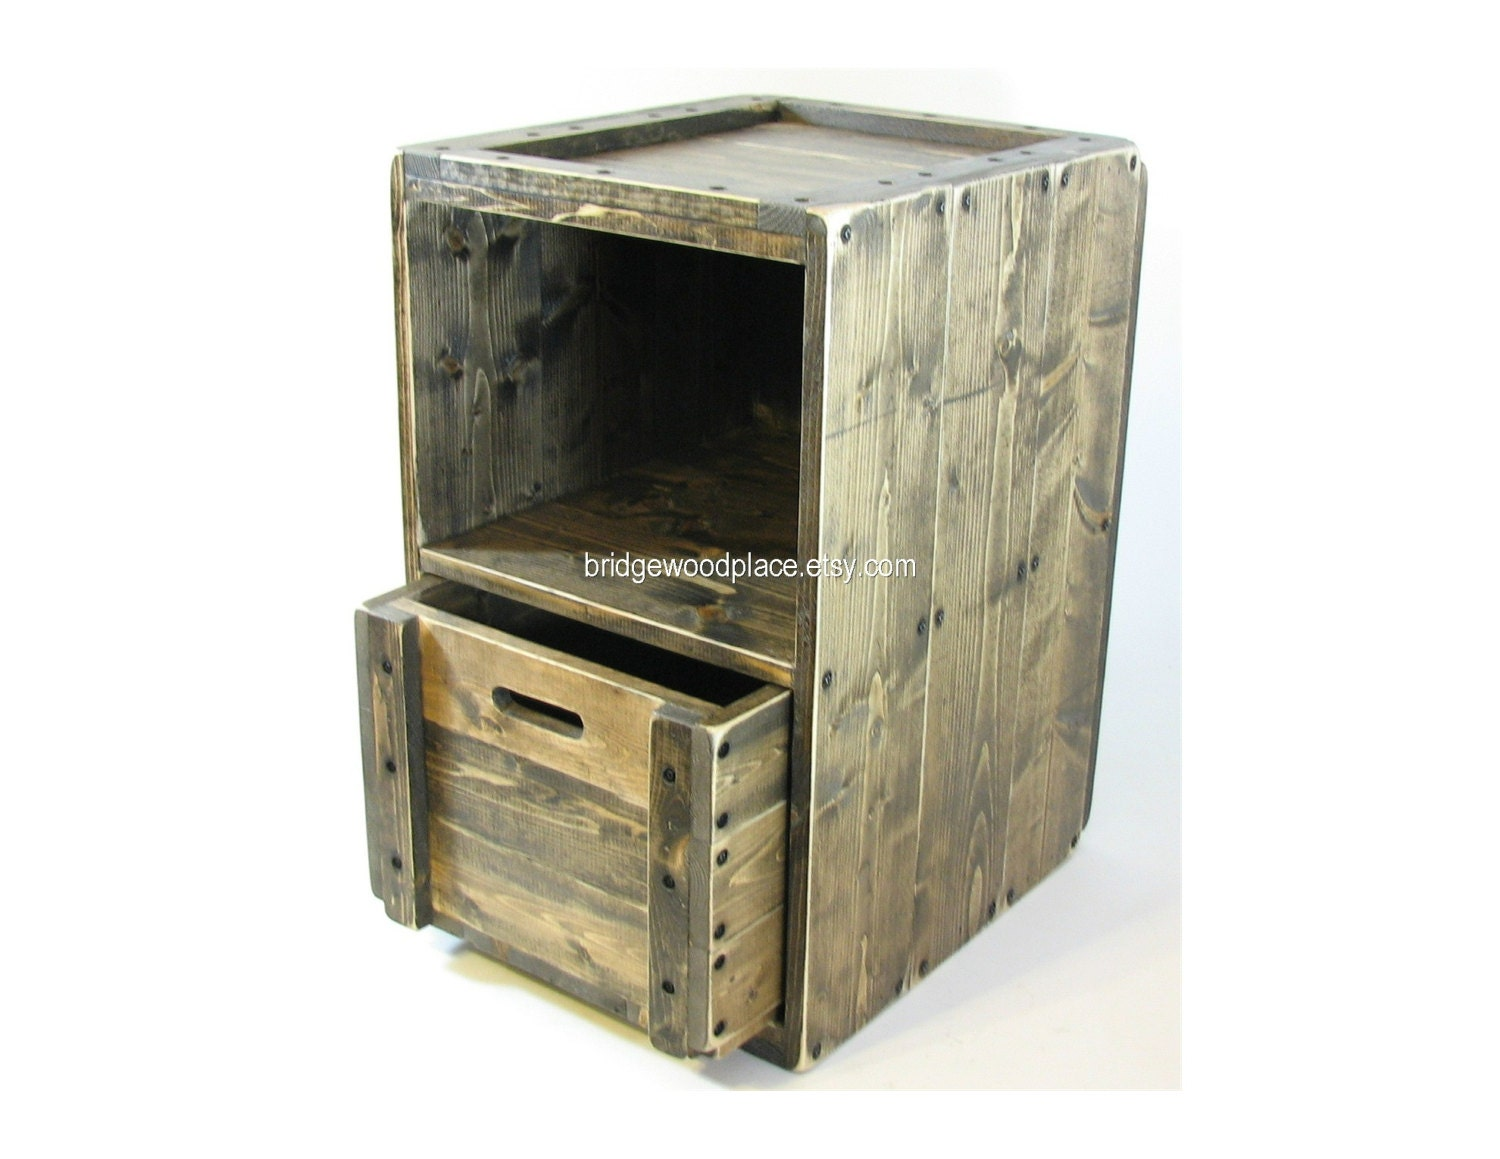 Wood crate furniture side table wooden end by bridgewoodplace Wooden crates furniture